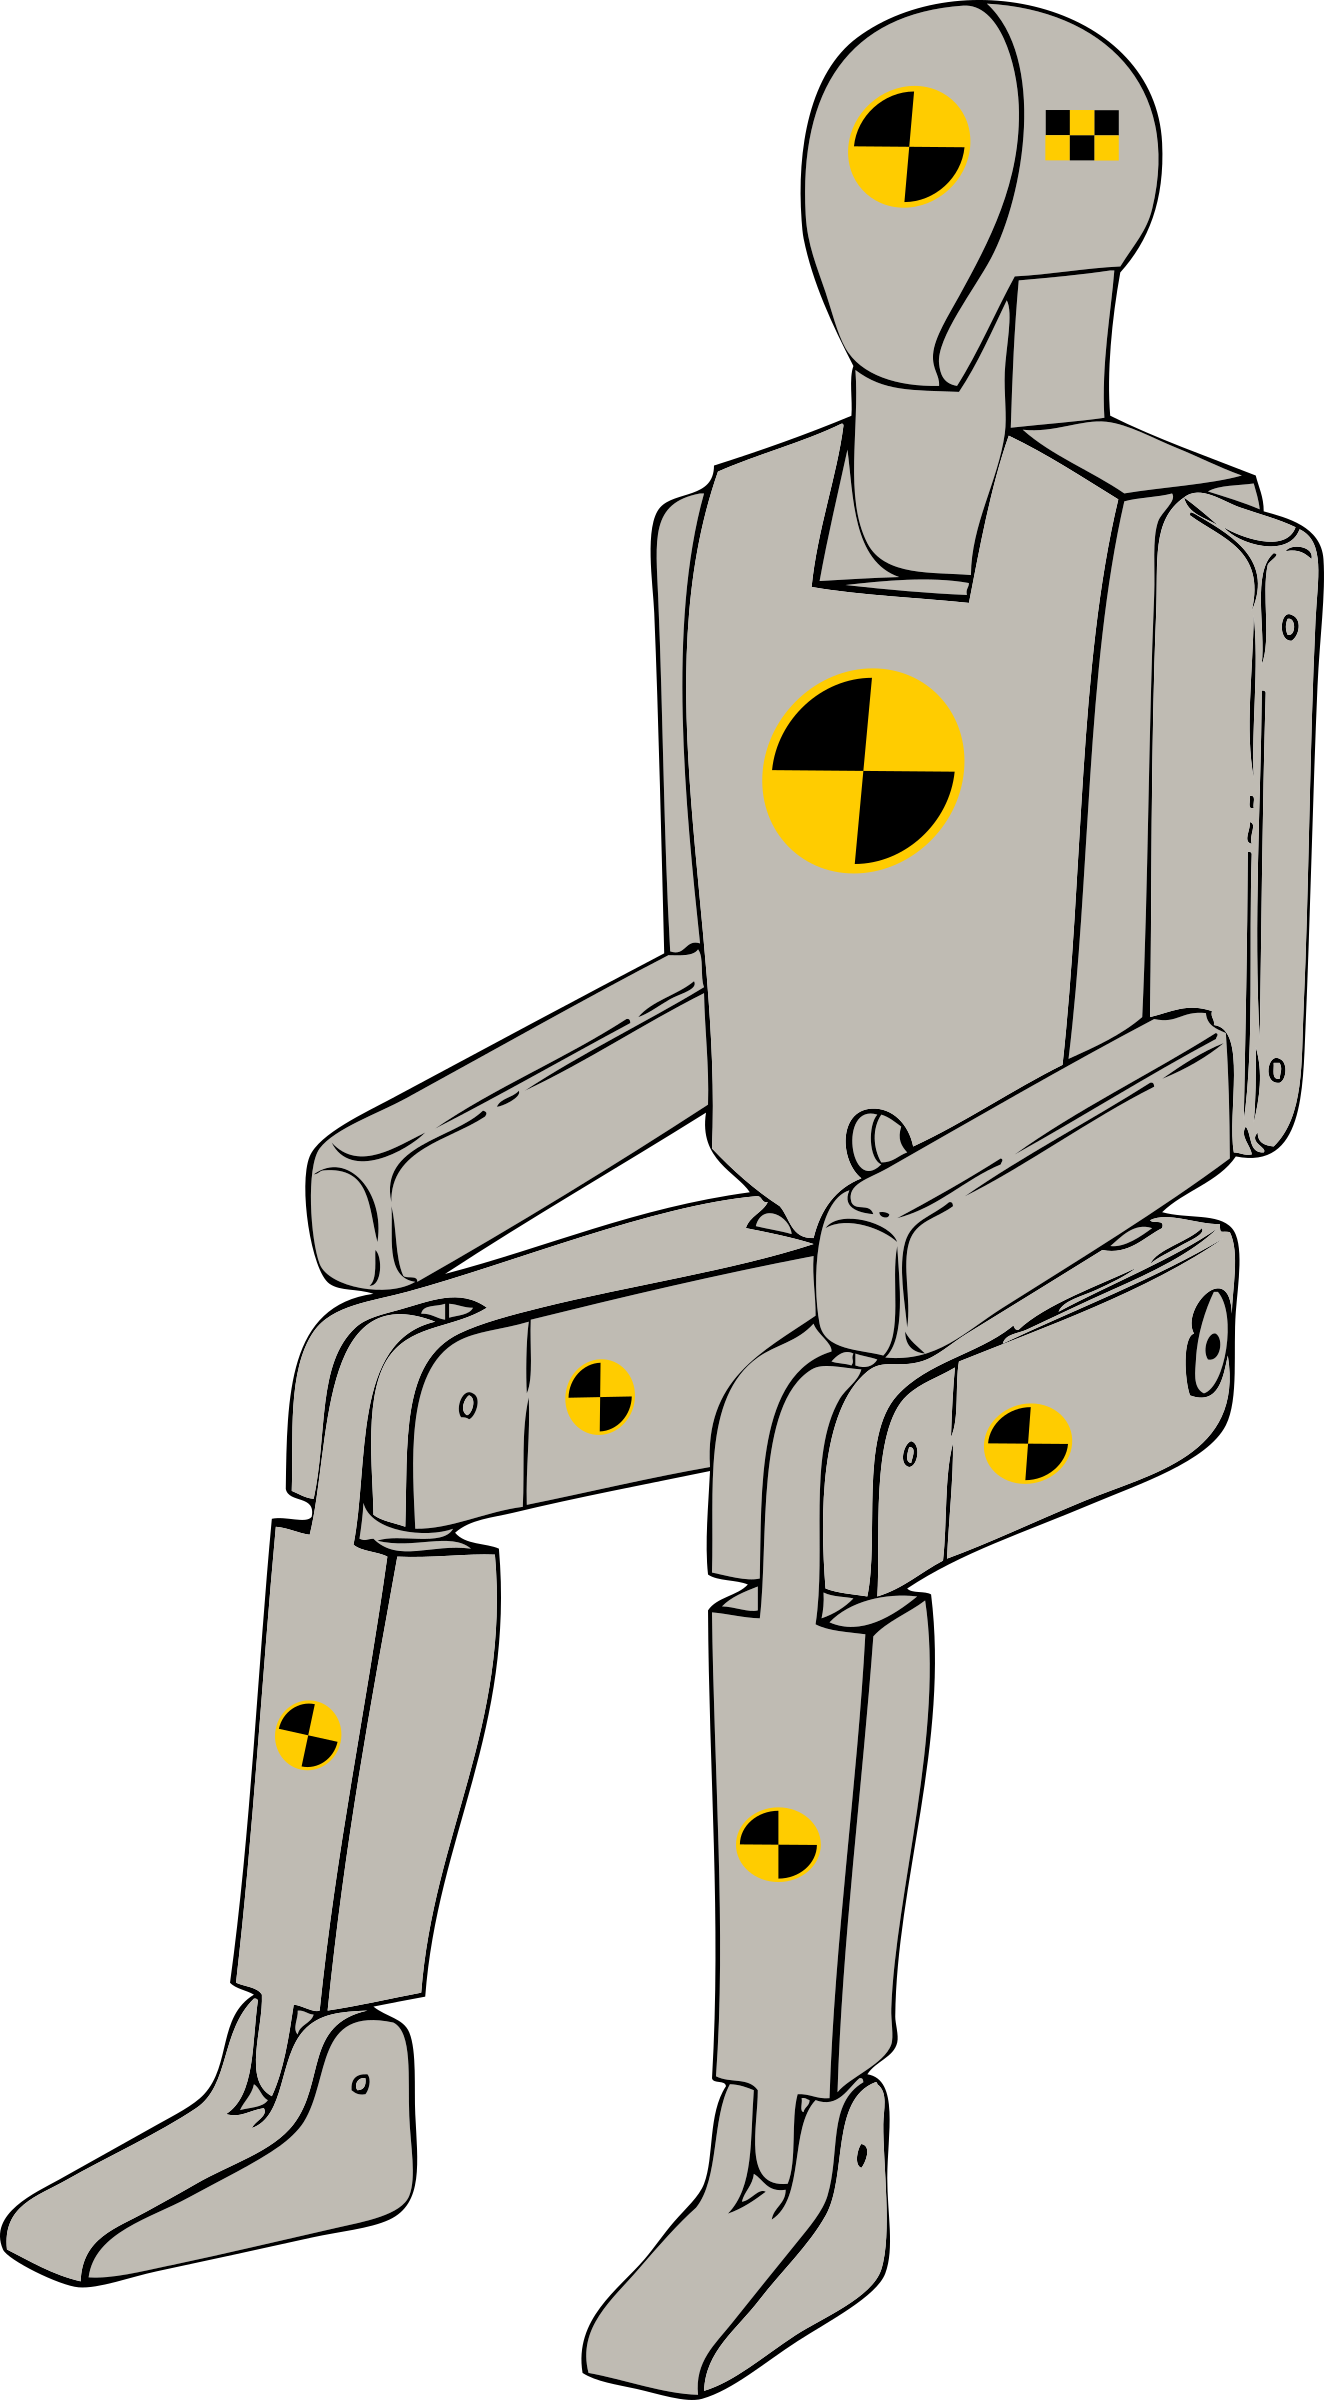 Crash Test Dummy by j4p4n